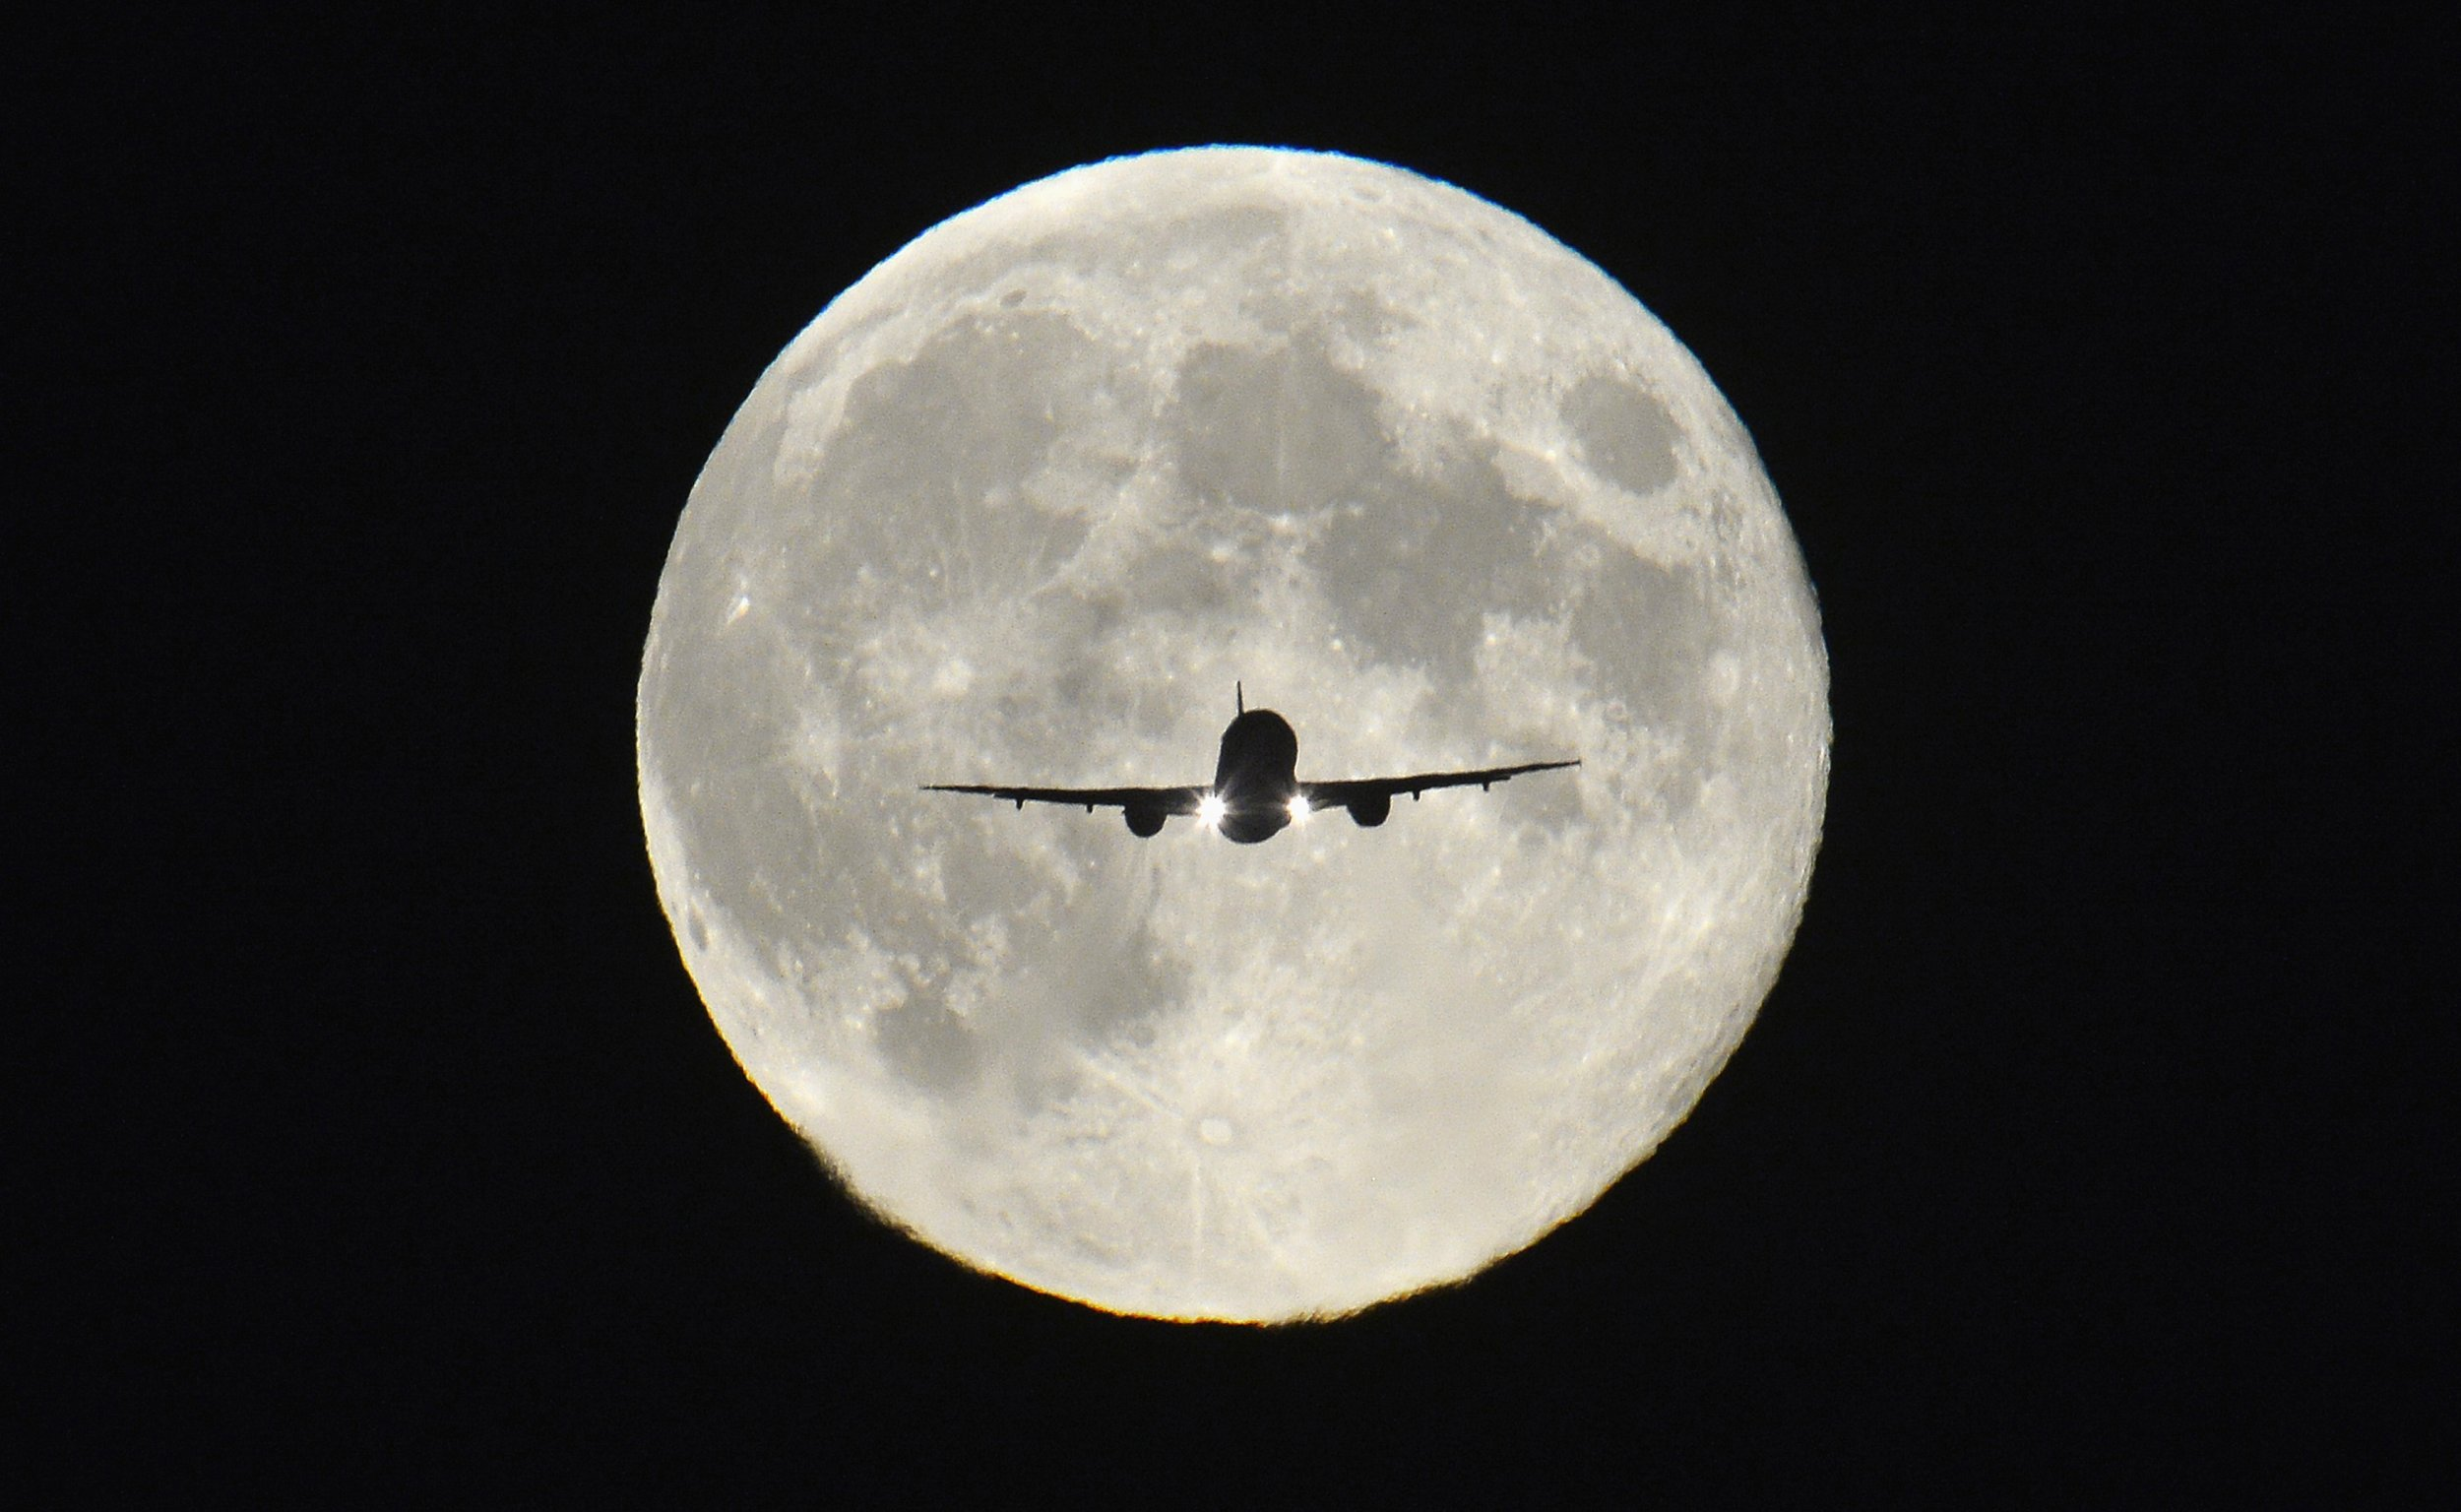 Plane flying in front of the moon